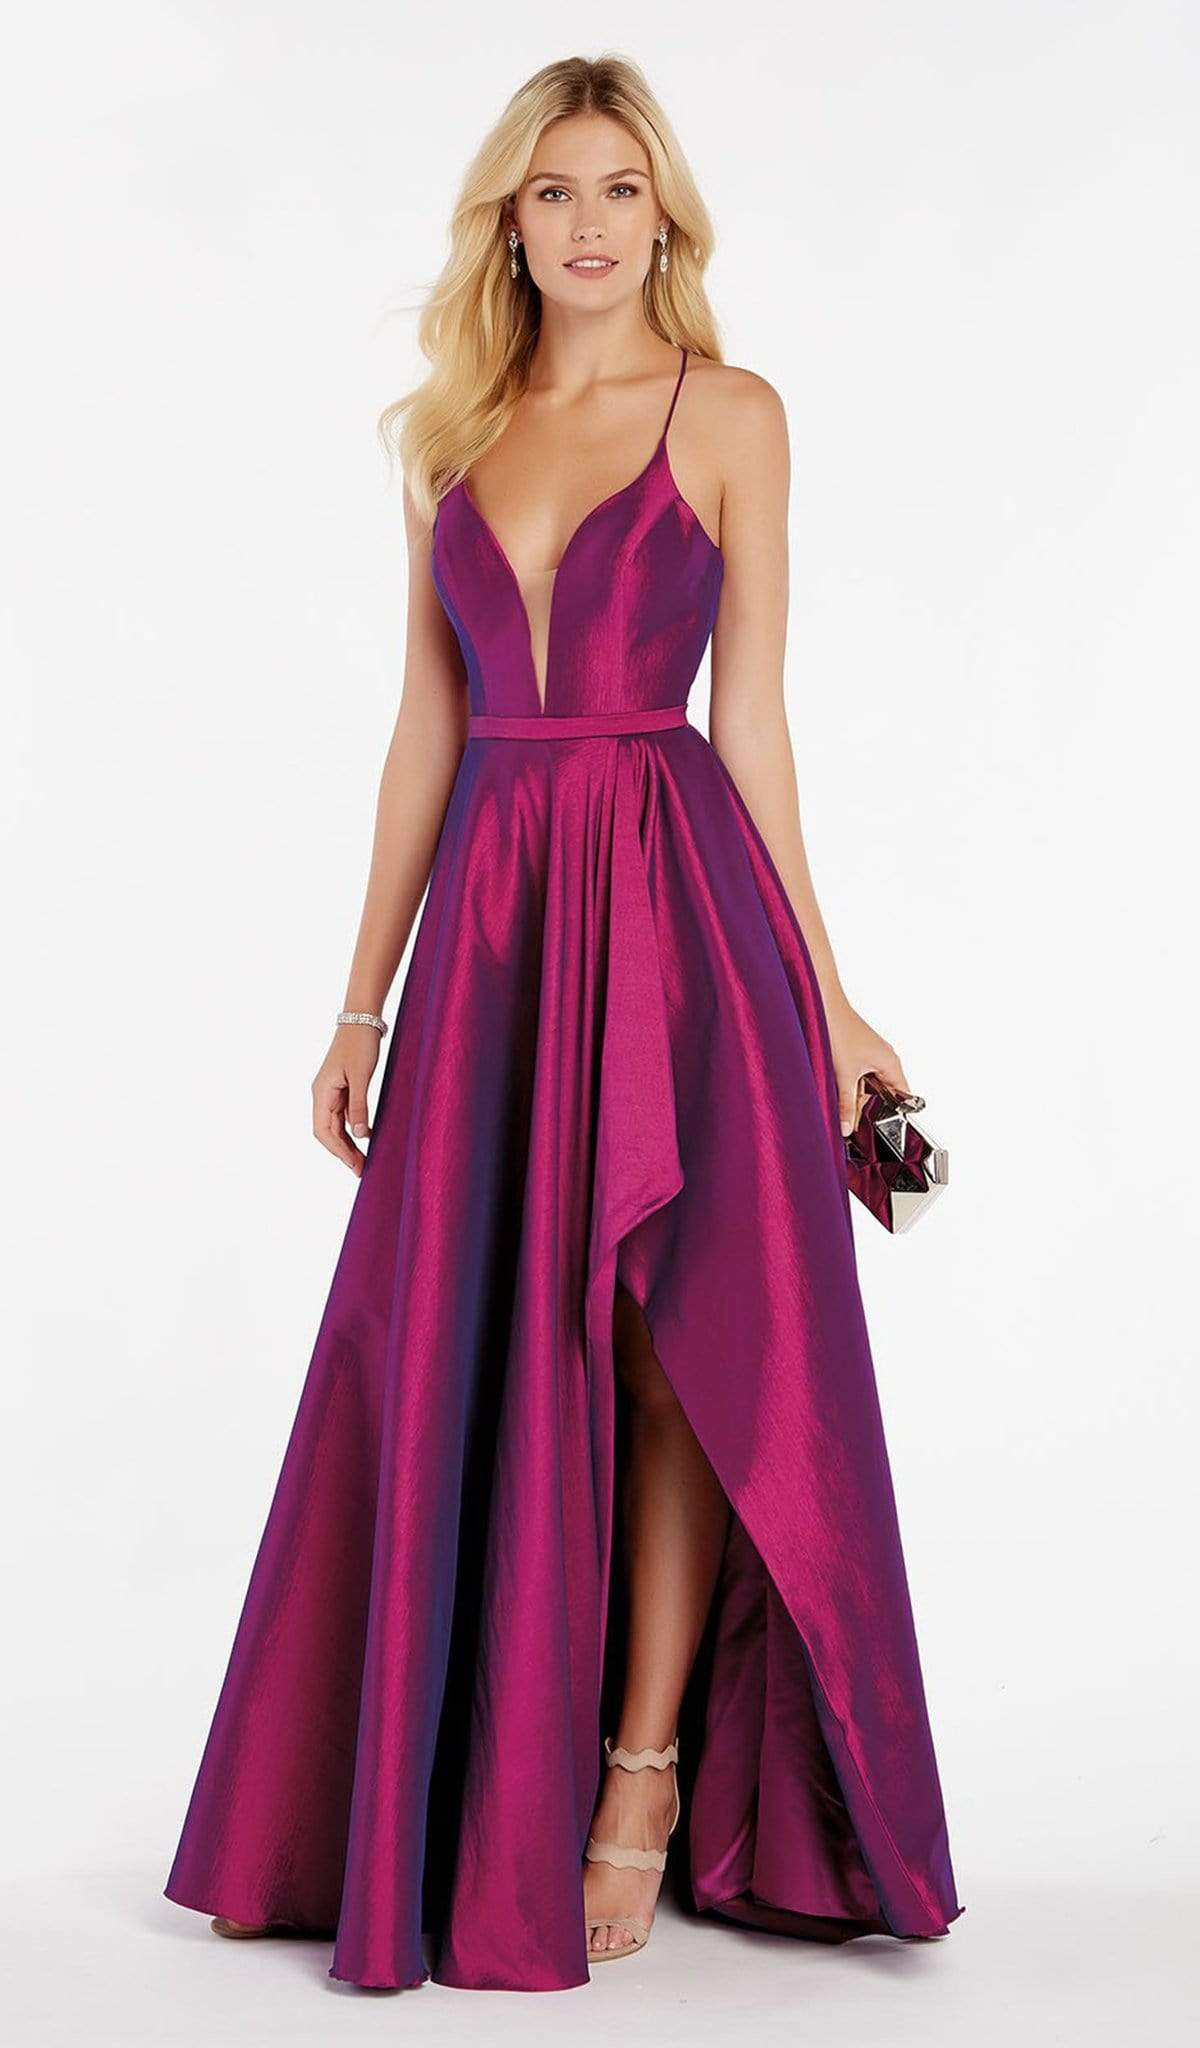 Alyce Paris - 60394 Illusion Plunging Neck High-Low Taffeta Prom Dress Special Occasion Dress 00 / Purple